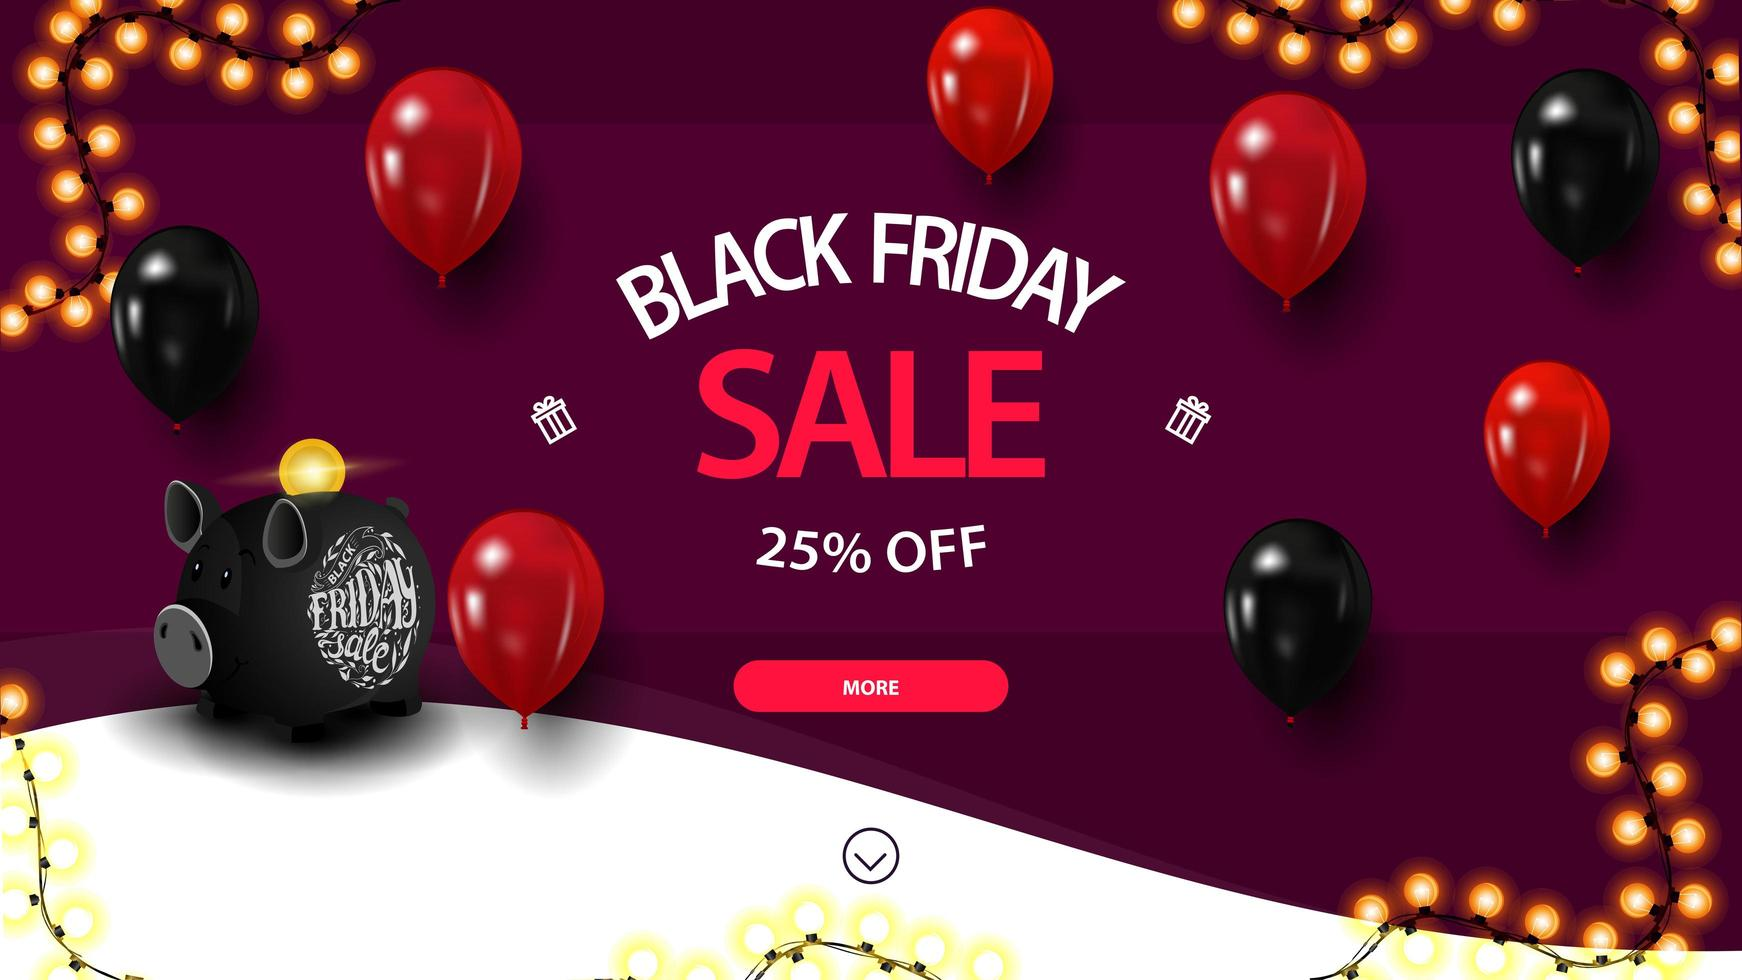 Black Friday sale, up to 25 off, discount purple banner with piggy bank and balloons for website vector